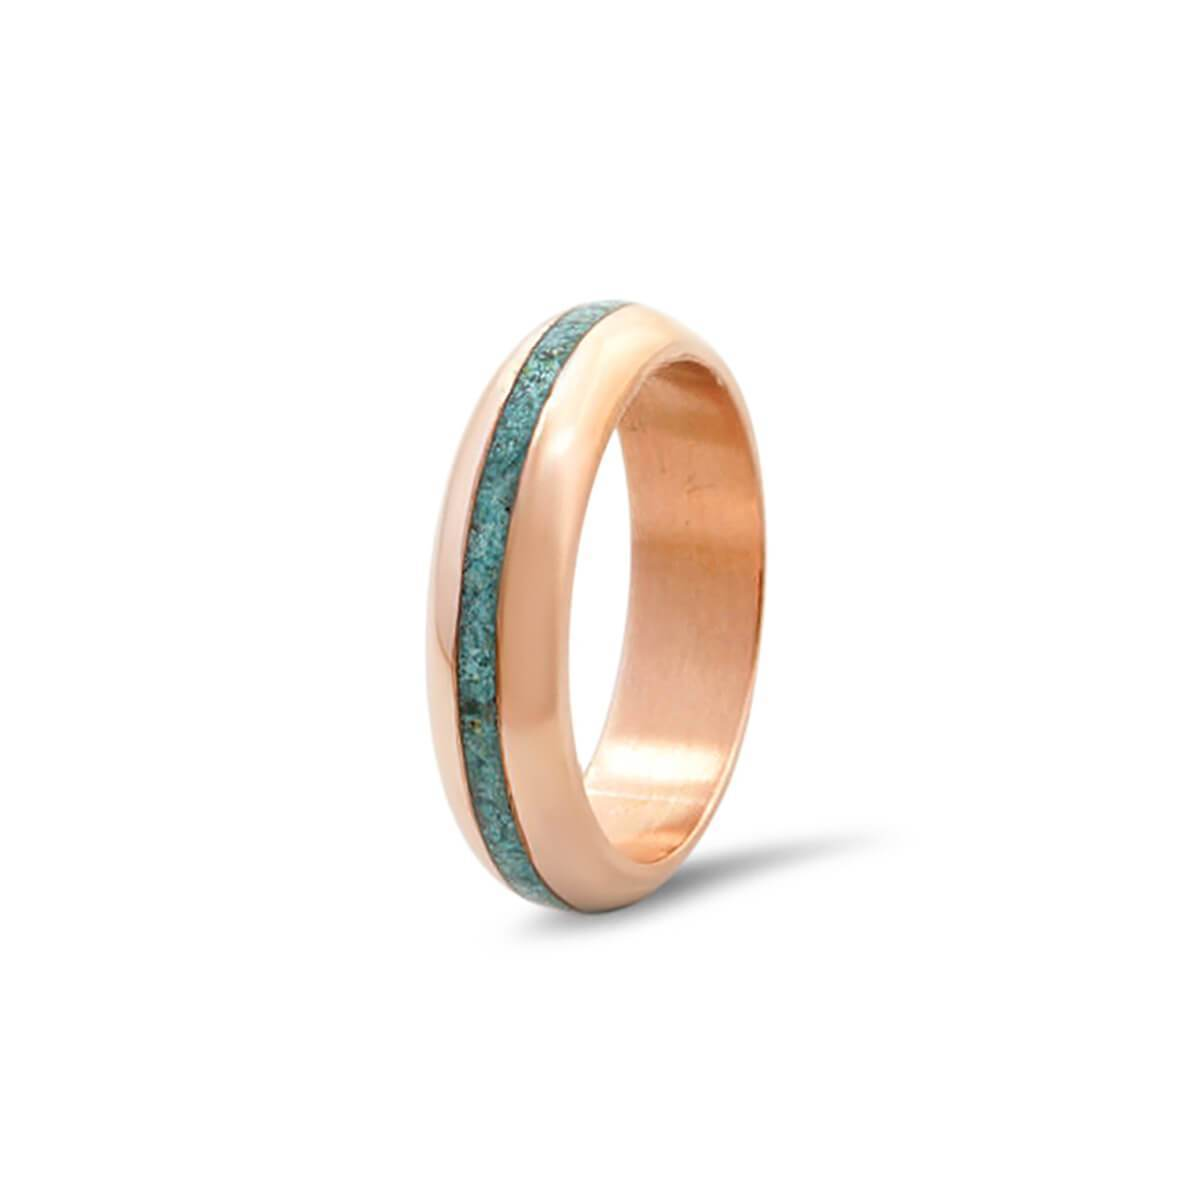 Copper With Turquoise Ring